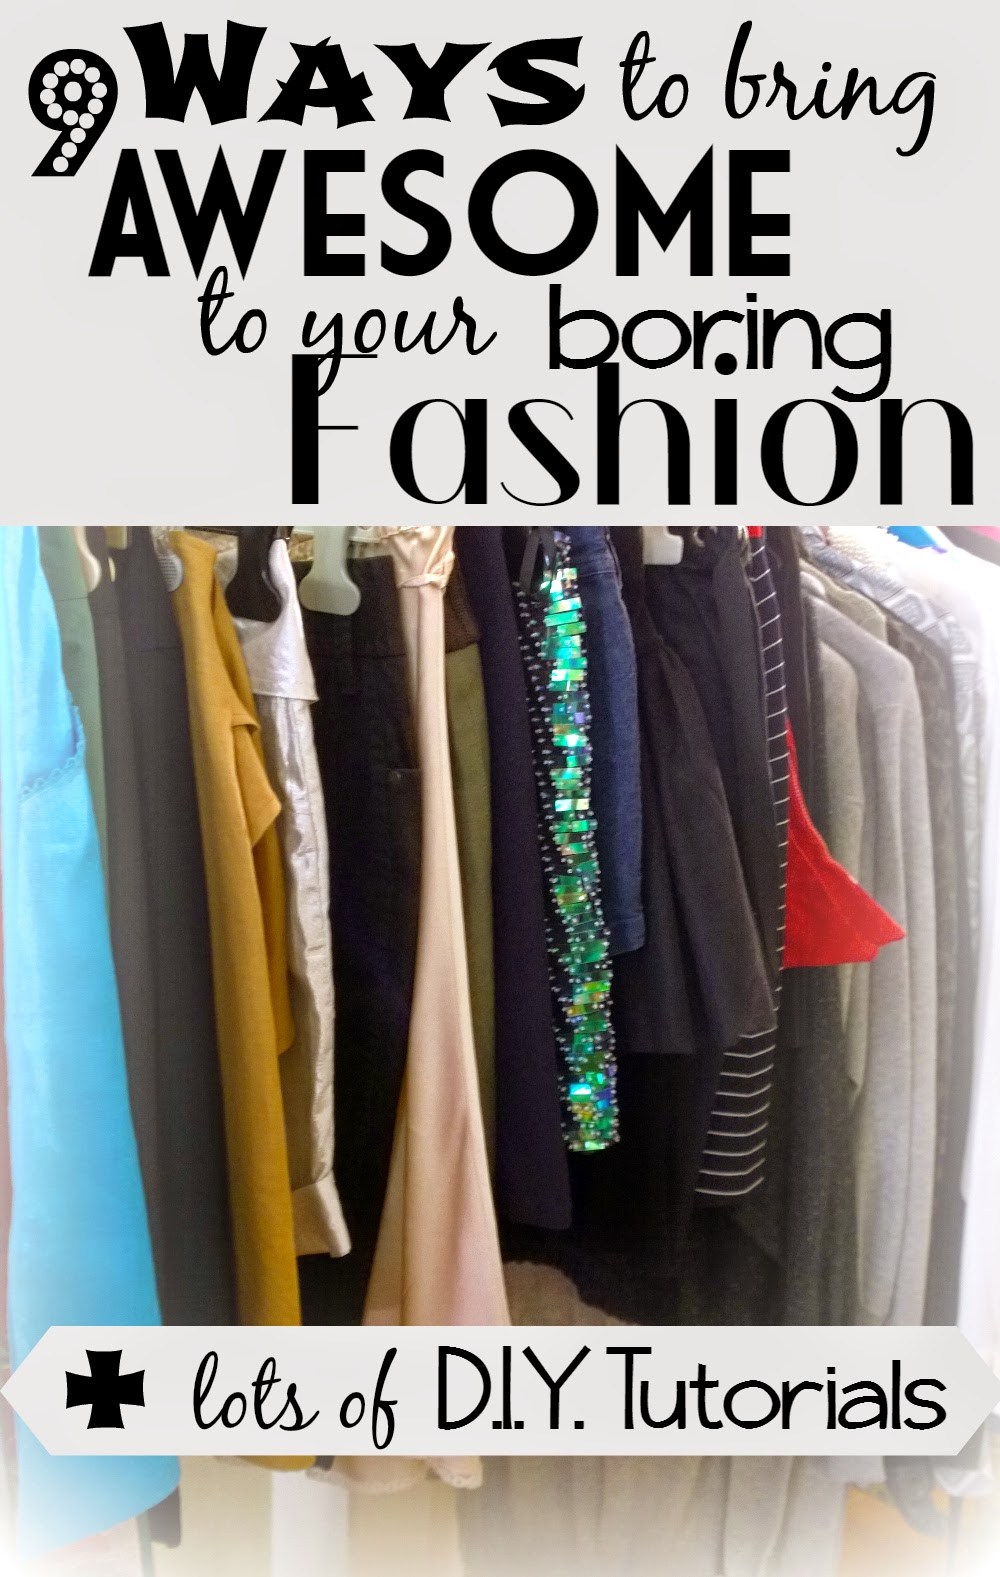 Ideas on how to spruce up & refashion old, plain or boring clothing plus links to lots of tutorials    9 Ways to Make Your Boring Fashion Awesome   Funky Jungle, fashion and personal style blog